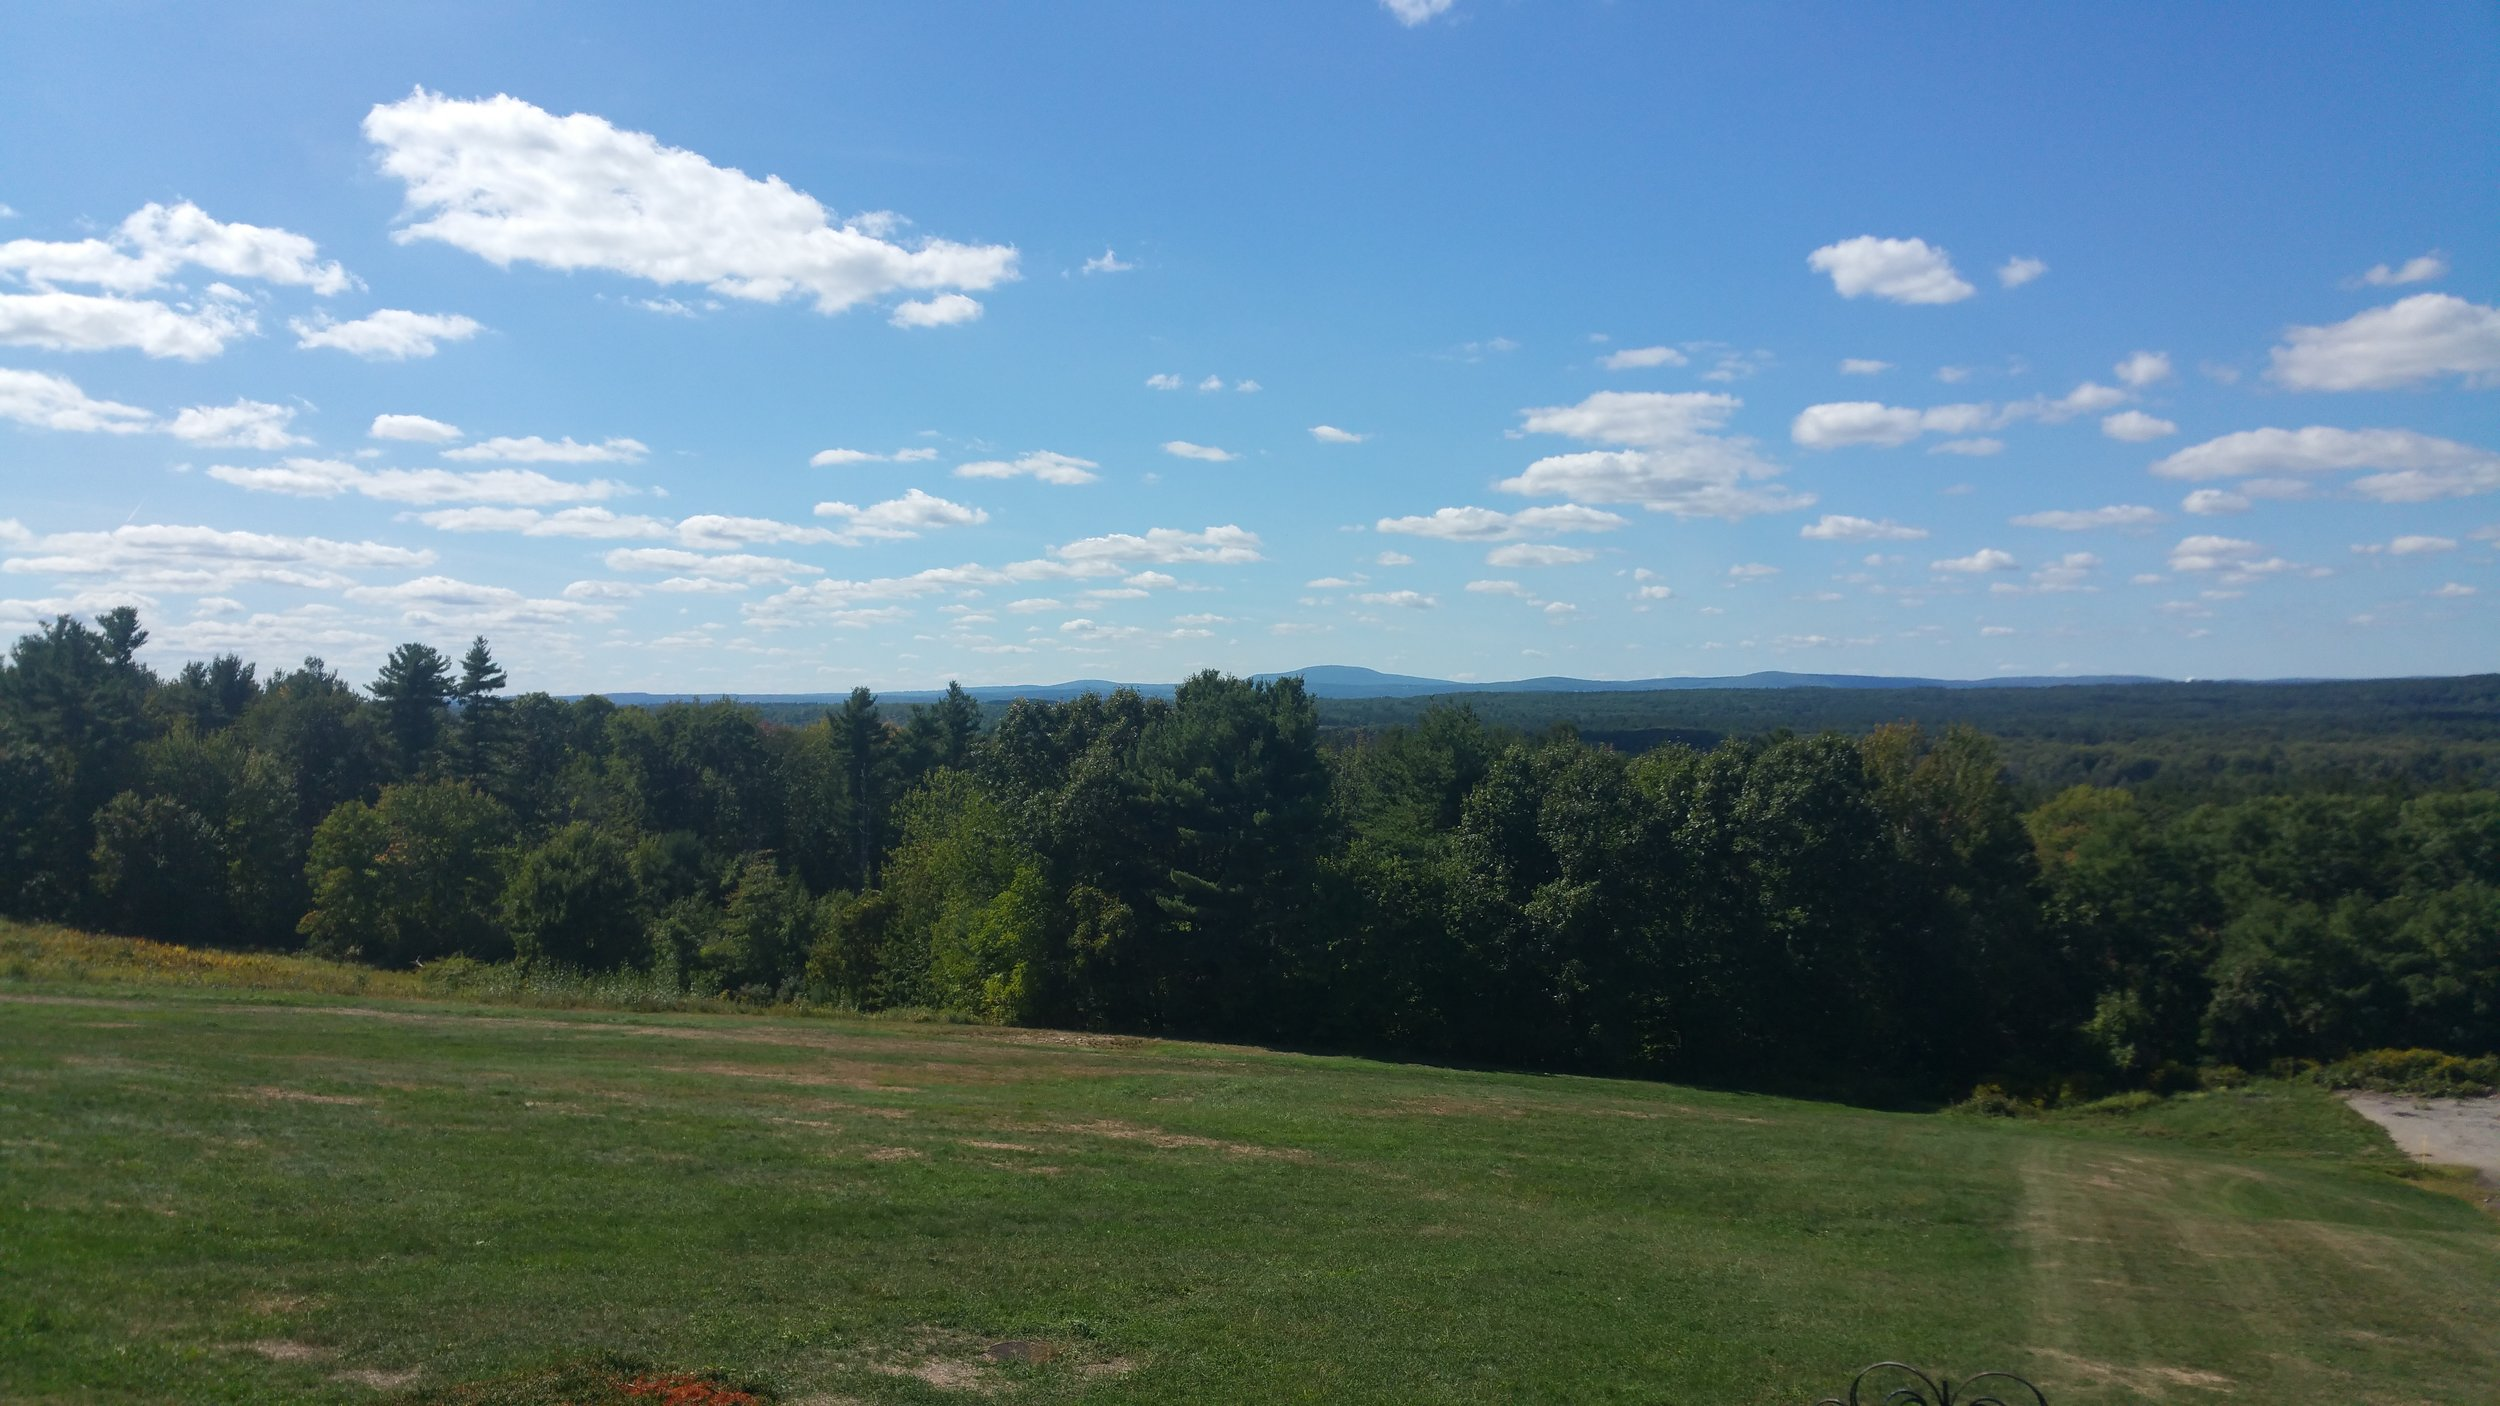 The view from the cafe. Mount Wachusett in the distance. The original farmhouse is to the right, down the hill.